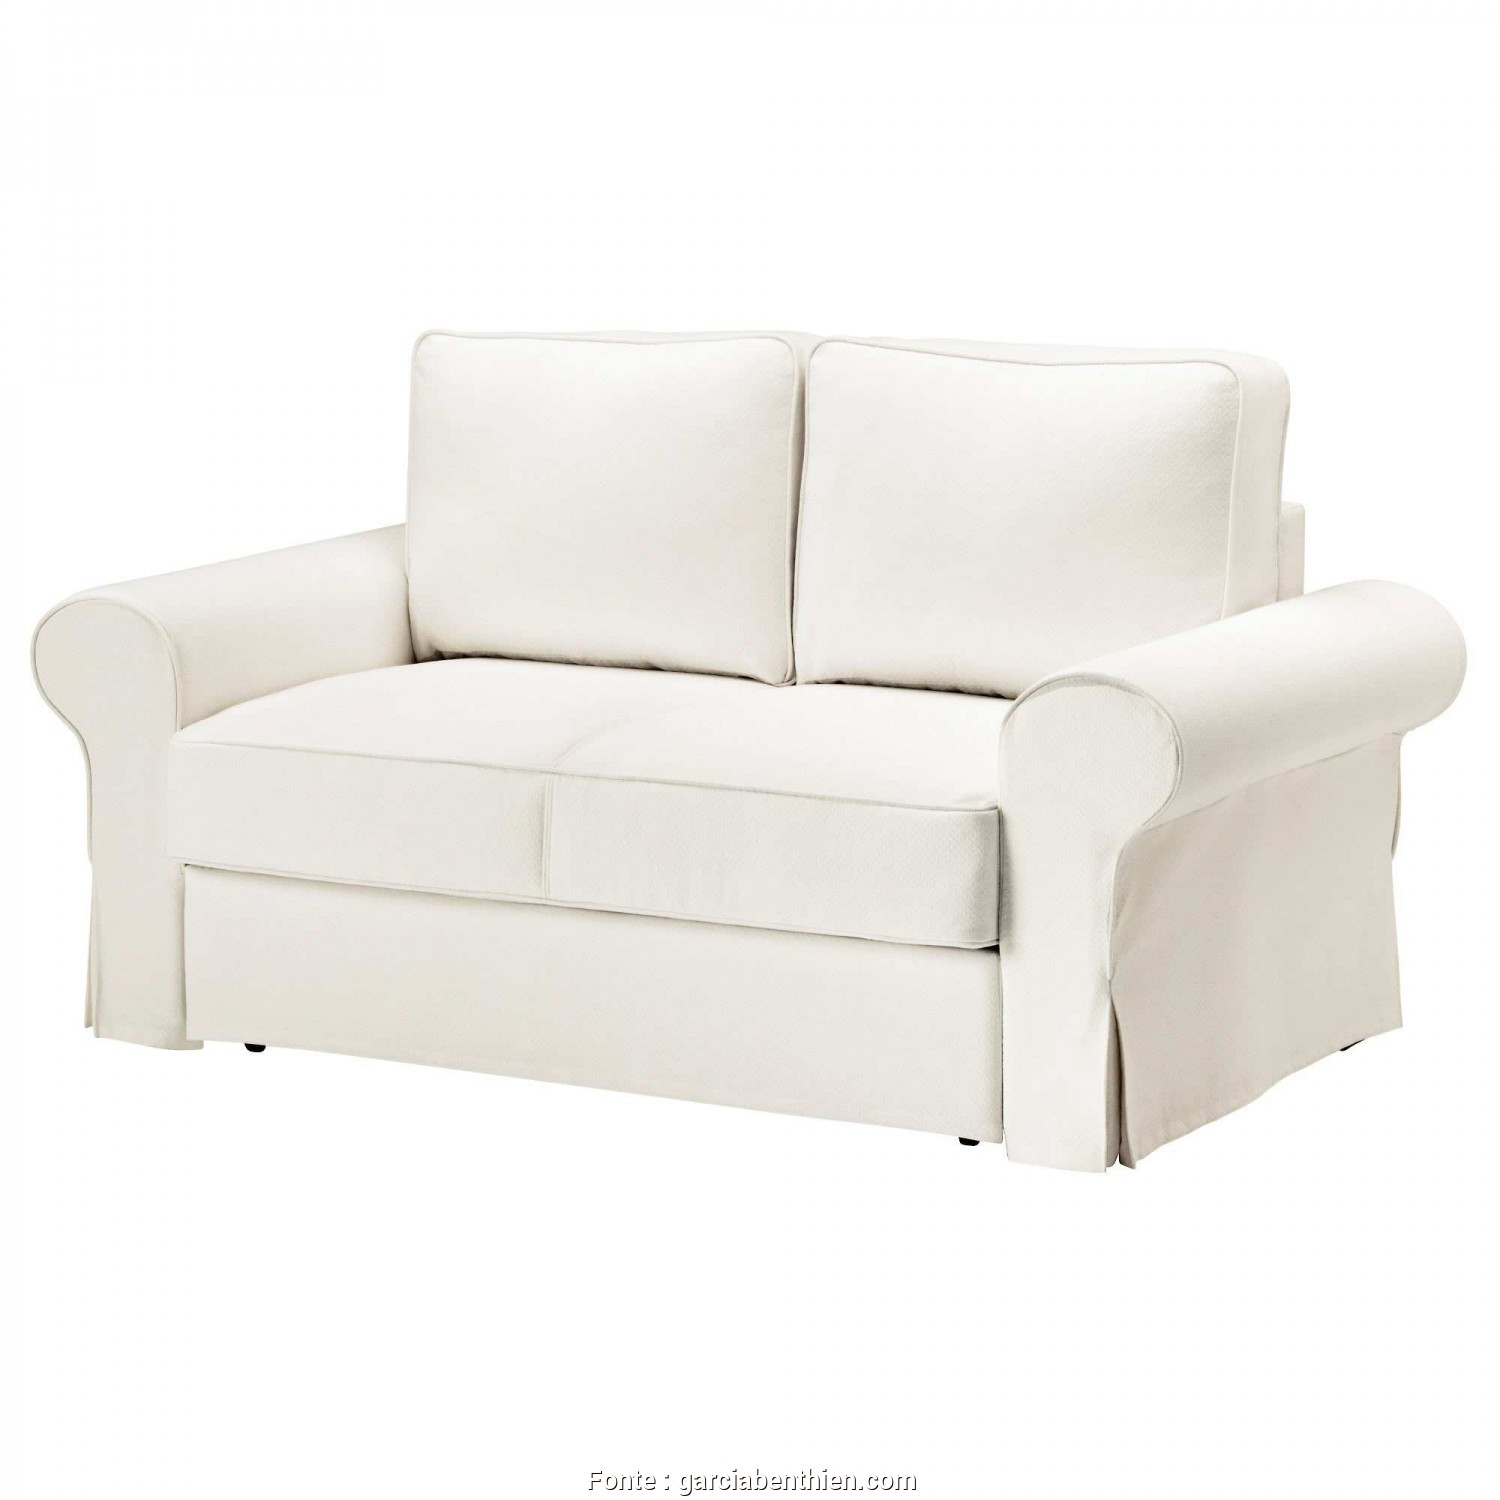 Ikea Backabro 2 Sitzer, Magnifico ... Backabro, Seat Sofa, Cover Hylte White Ikea Of Best Ikea Sofa, Cover